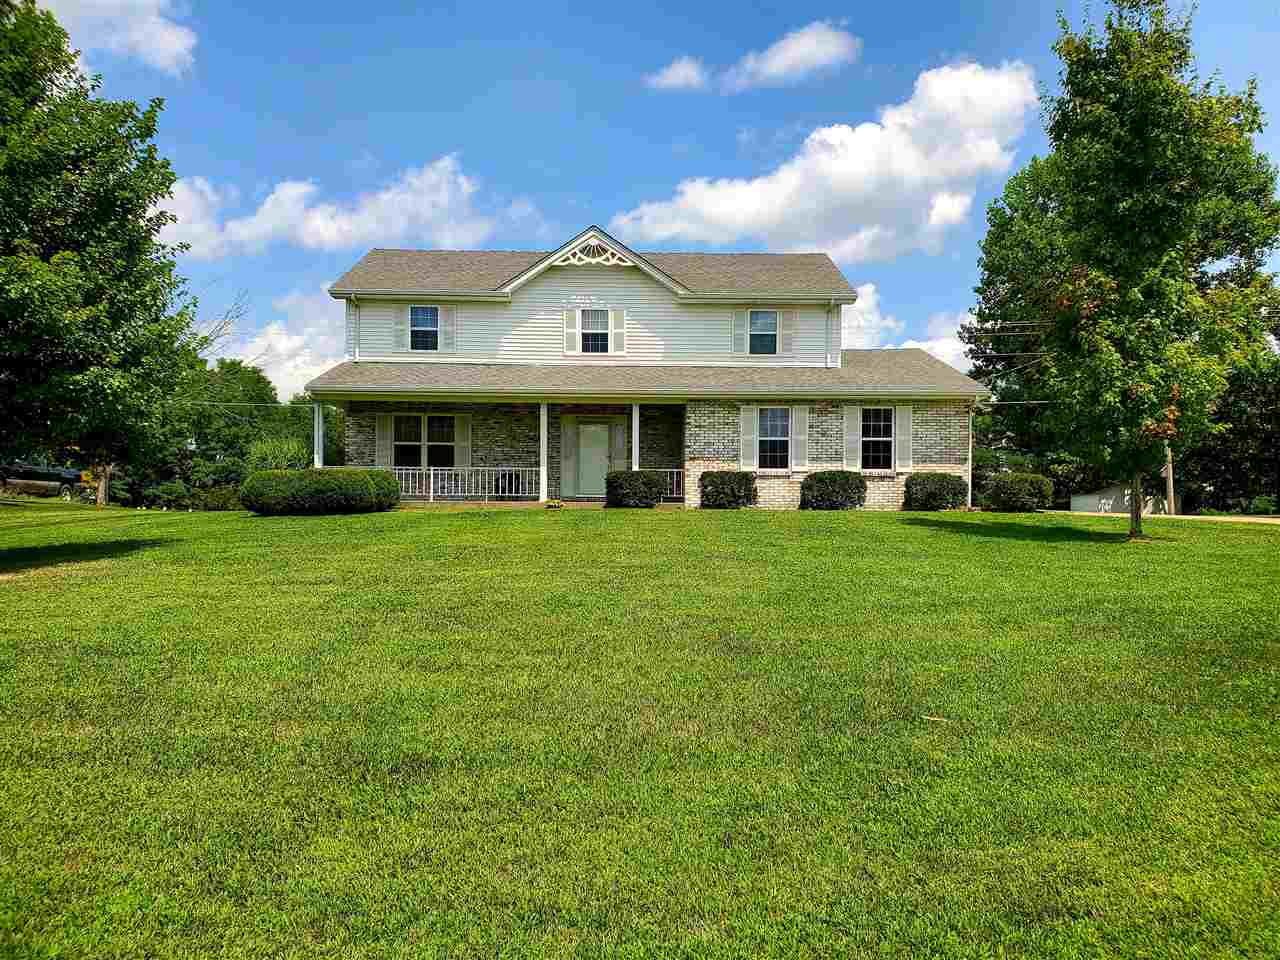 2115 Dry Ridge - Mt Zion Road, one of homes for sale in Dry Ridge